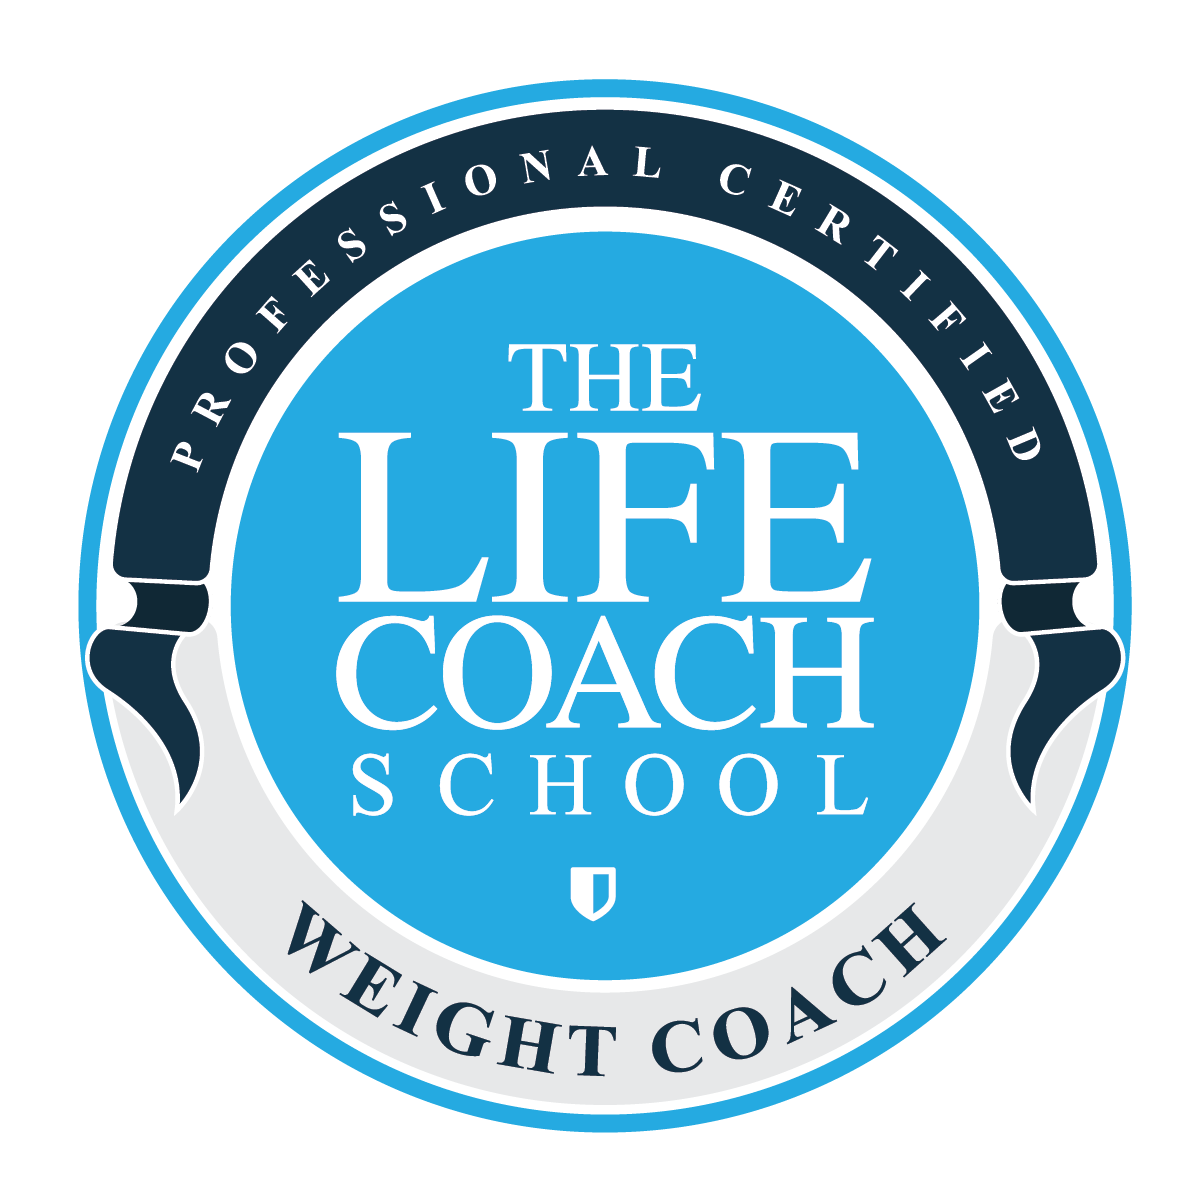 Certified Weight Coach